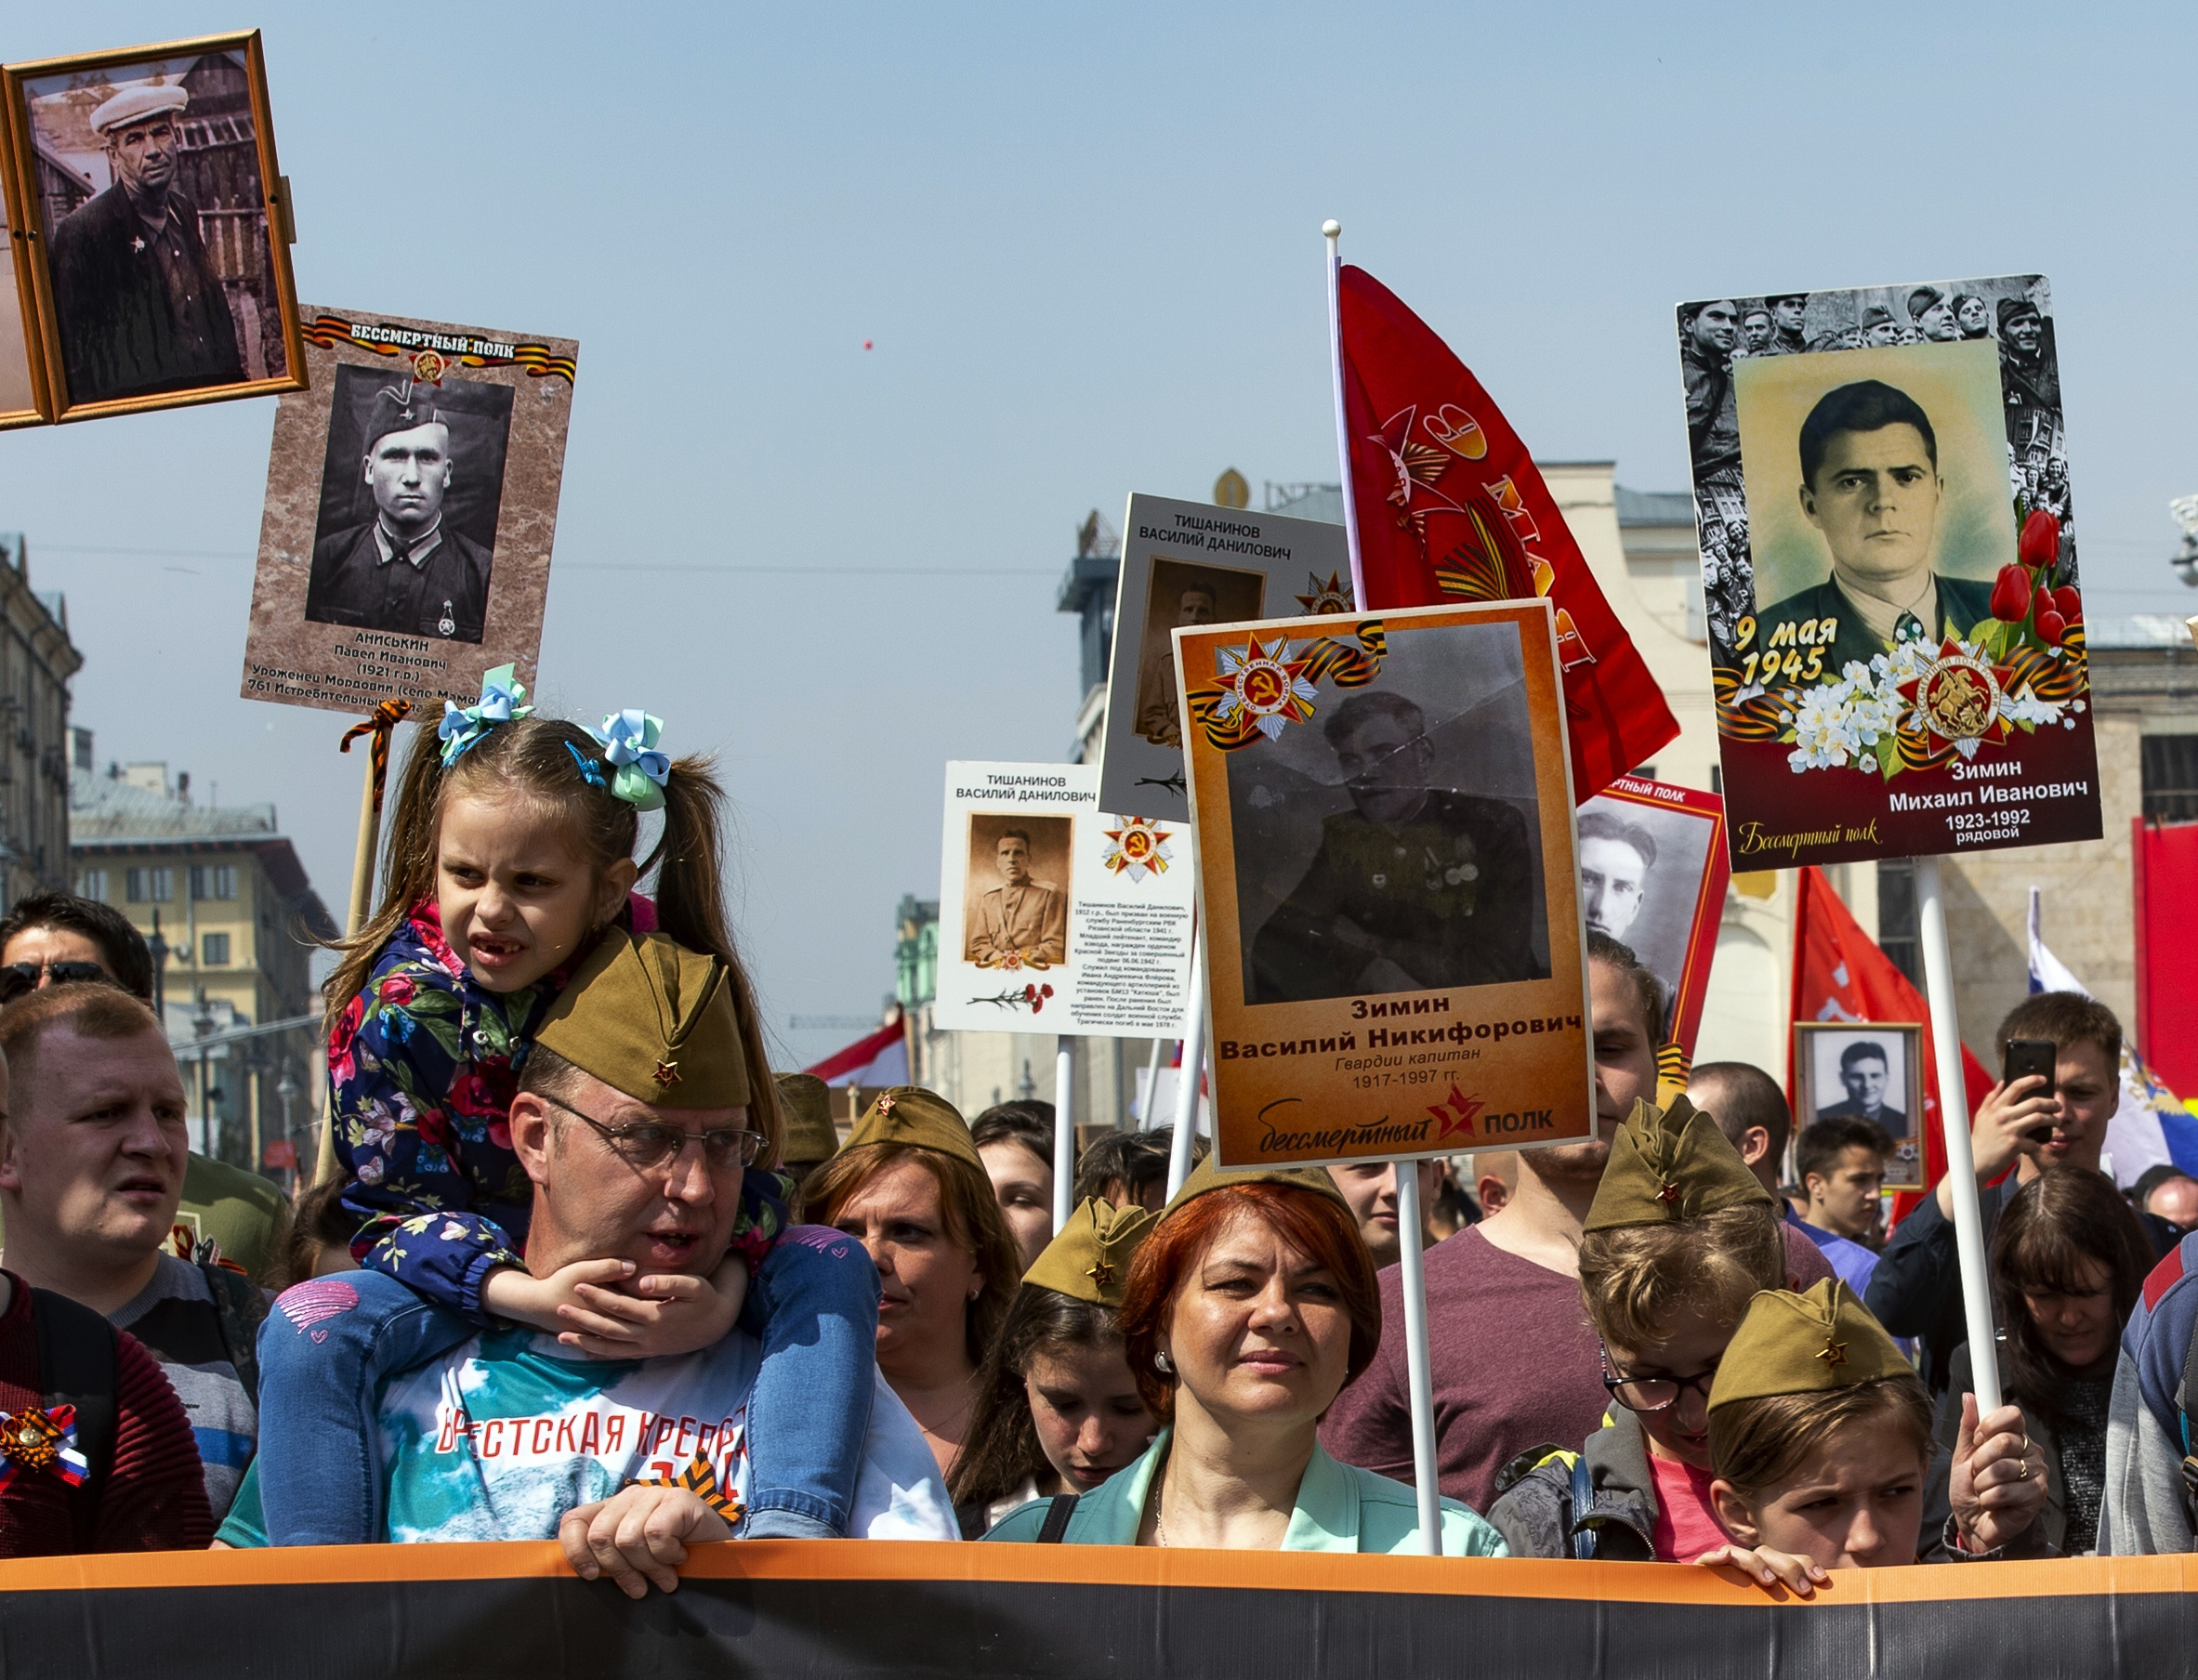 People carry portraits of relatives who fought in World War II, and Soviet flags, during the Immortal Regiment march through the main street toward Red Square in Moscow, Russia, Thursday, May 9, 2019, celebrating 74 years since the end of WWII and the defeat of Nazi Germany. (AP Photo/Dmitry Serebryakov)